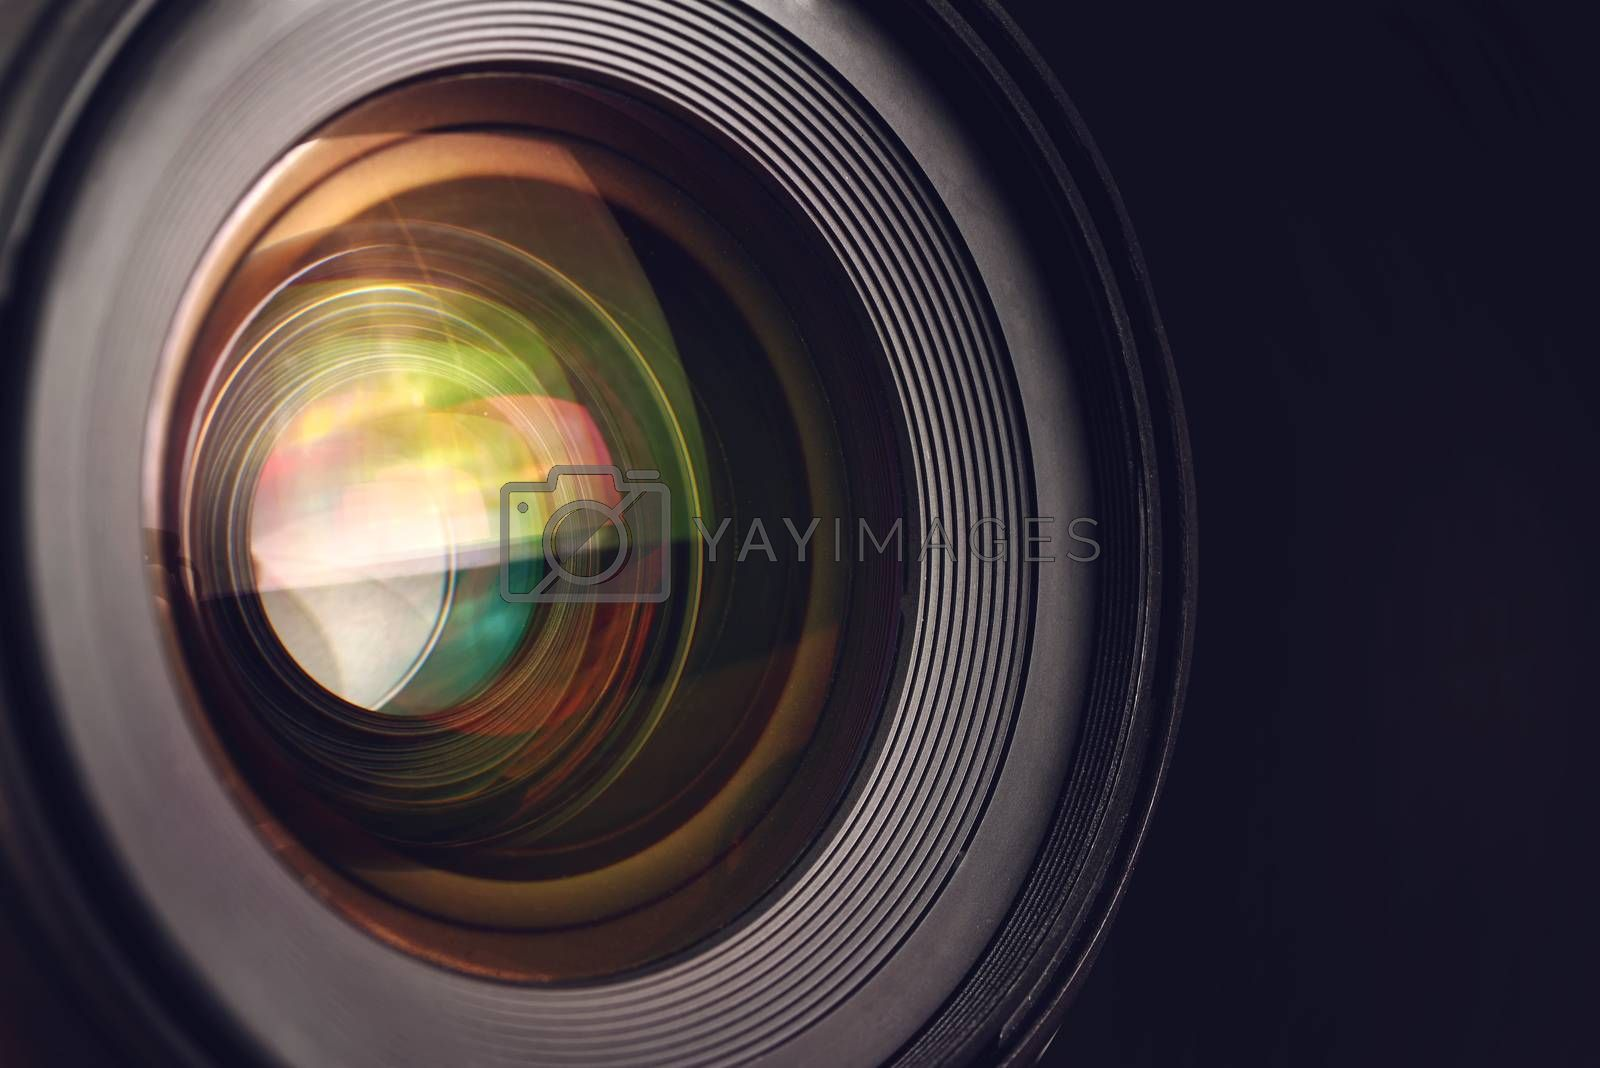 Camera lens detail, front glass of wide angle photography DSLR camera lens, macro shot